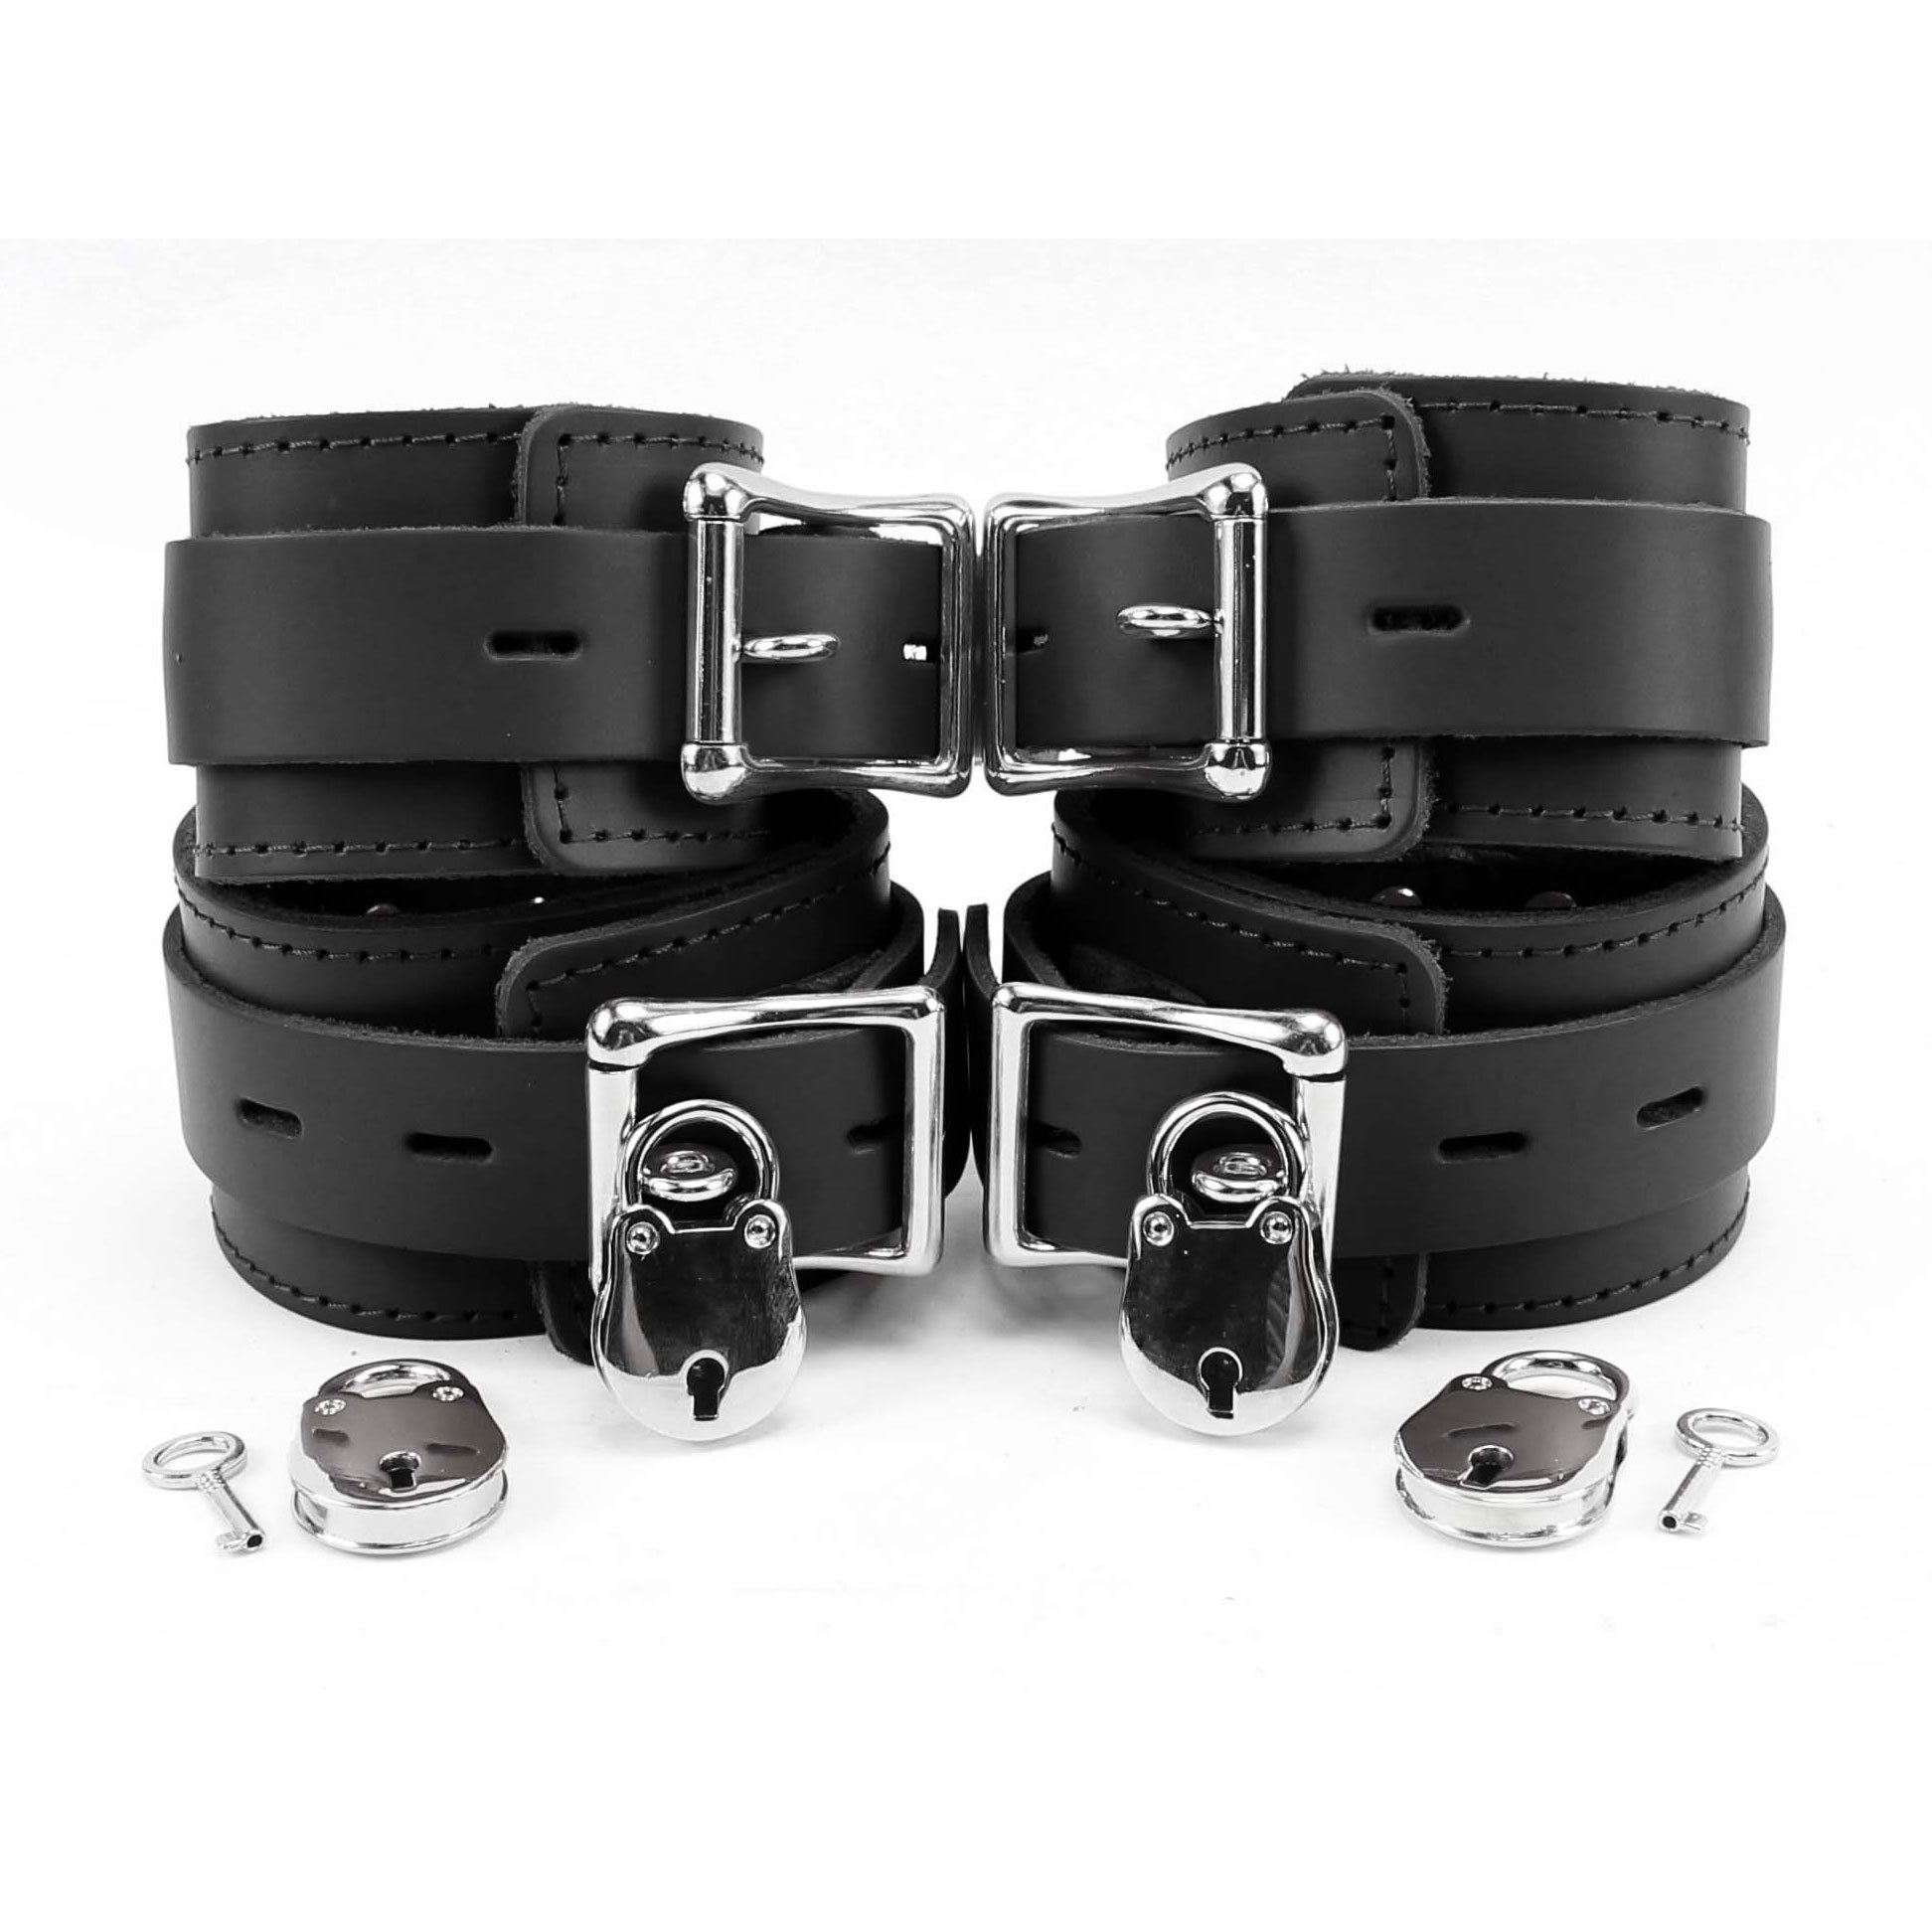 Atlas Lockable Wrist and Ankle Cuffs Combo Lambskin Leather Ultra Soft Restraints (Black)